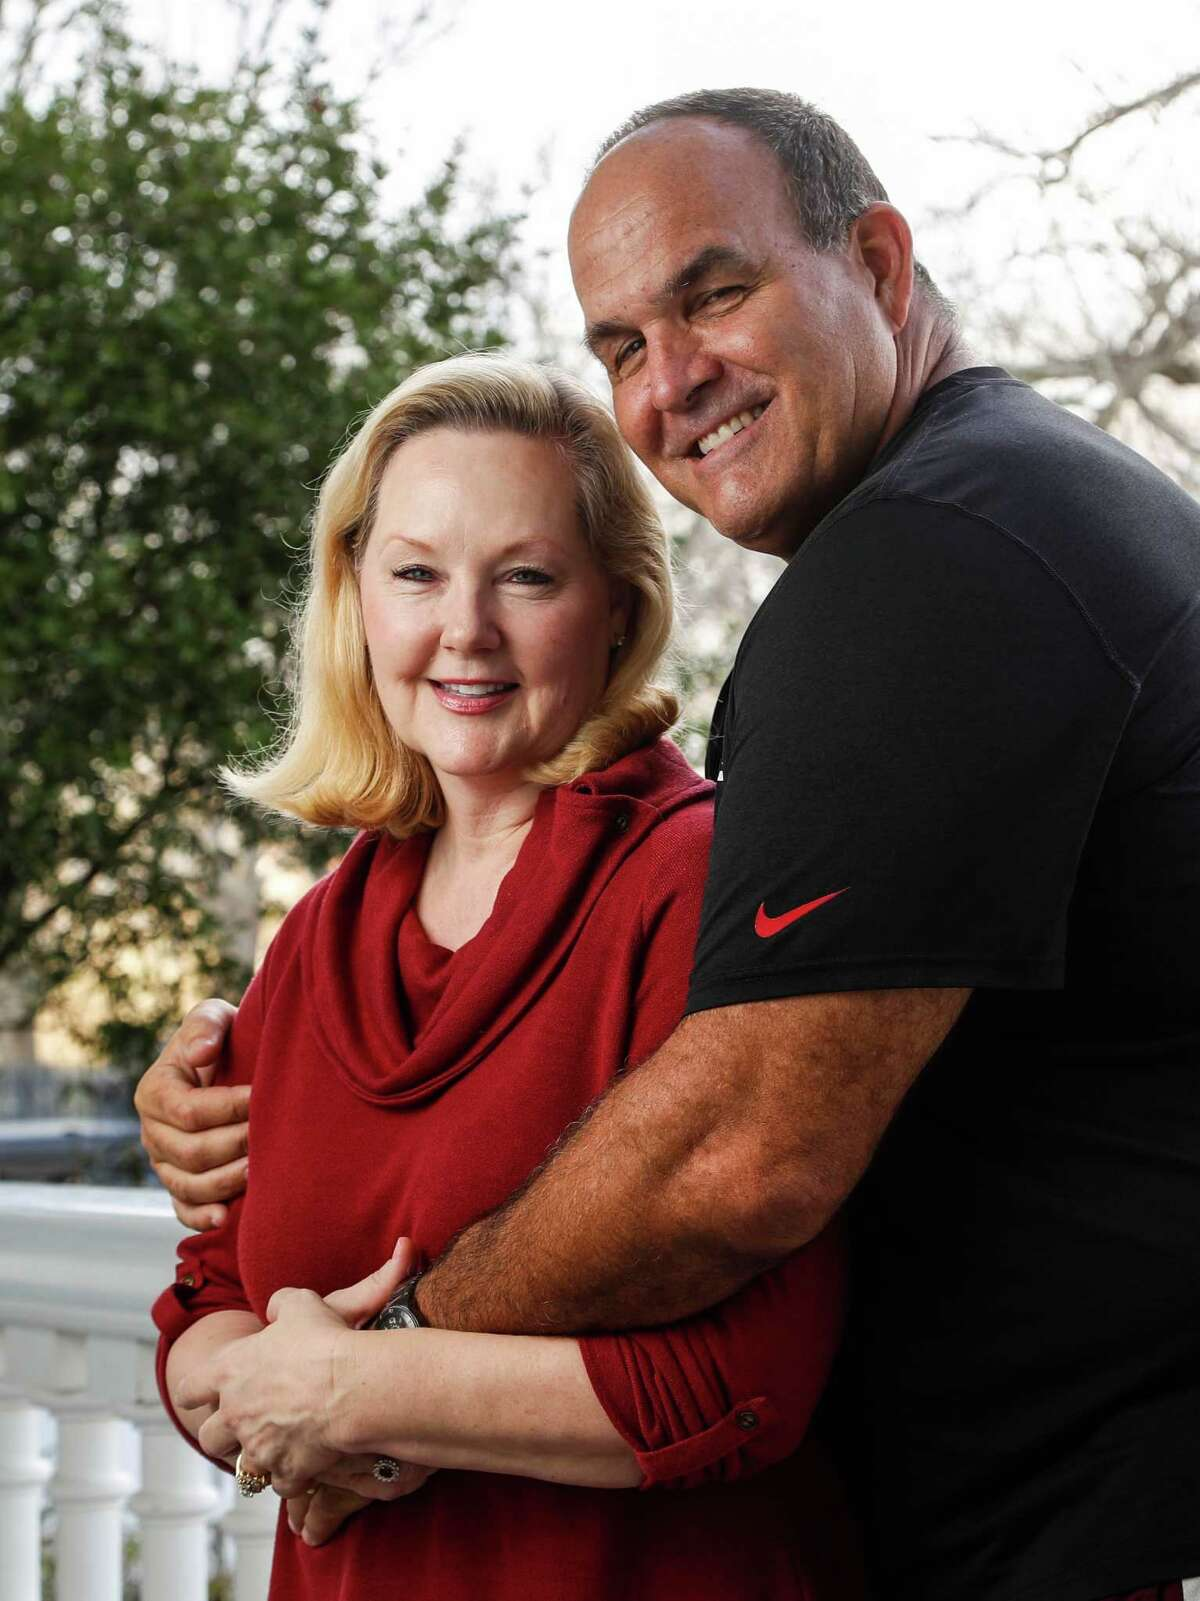 Carrie and Bruce Matthews photographed at their home, Wednesday, February 1, 2017. Feature on what it's like raising an NFL player, life in an NFL family with Carrie Matthews, the wife of Hall of Famer Bruce Matthews and mother of Jake Matthews, the starting lineman for Atlanta in Super Bowl.( Karen Warren / Houston Chronicle )